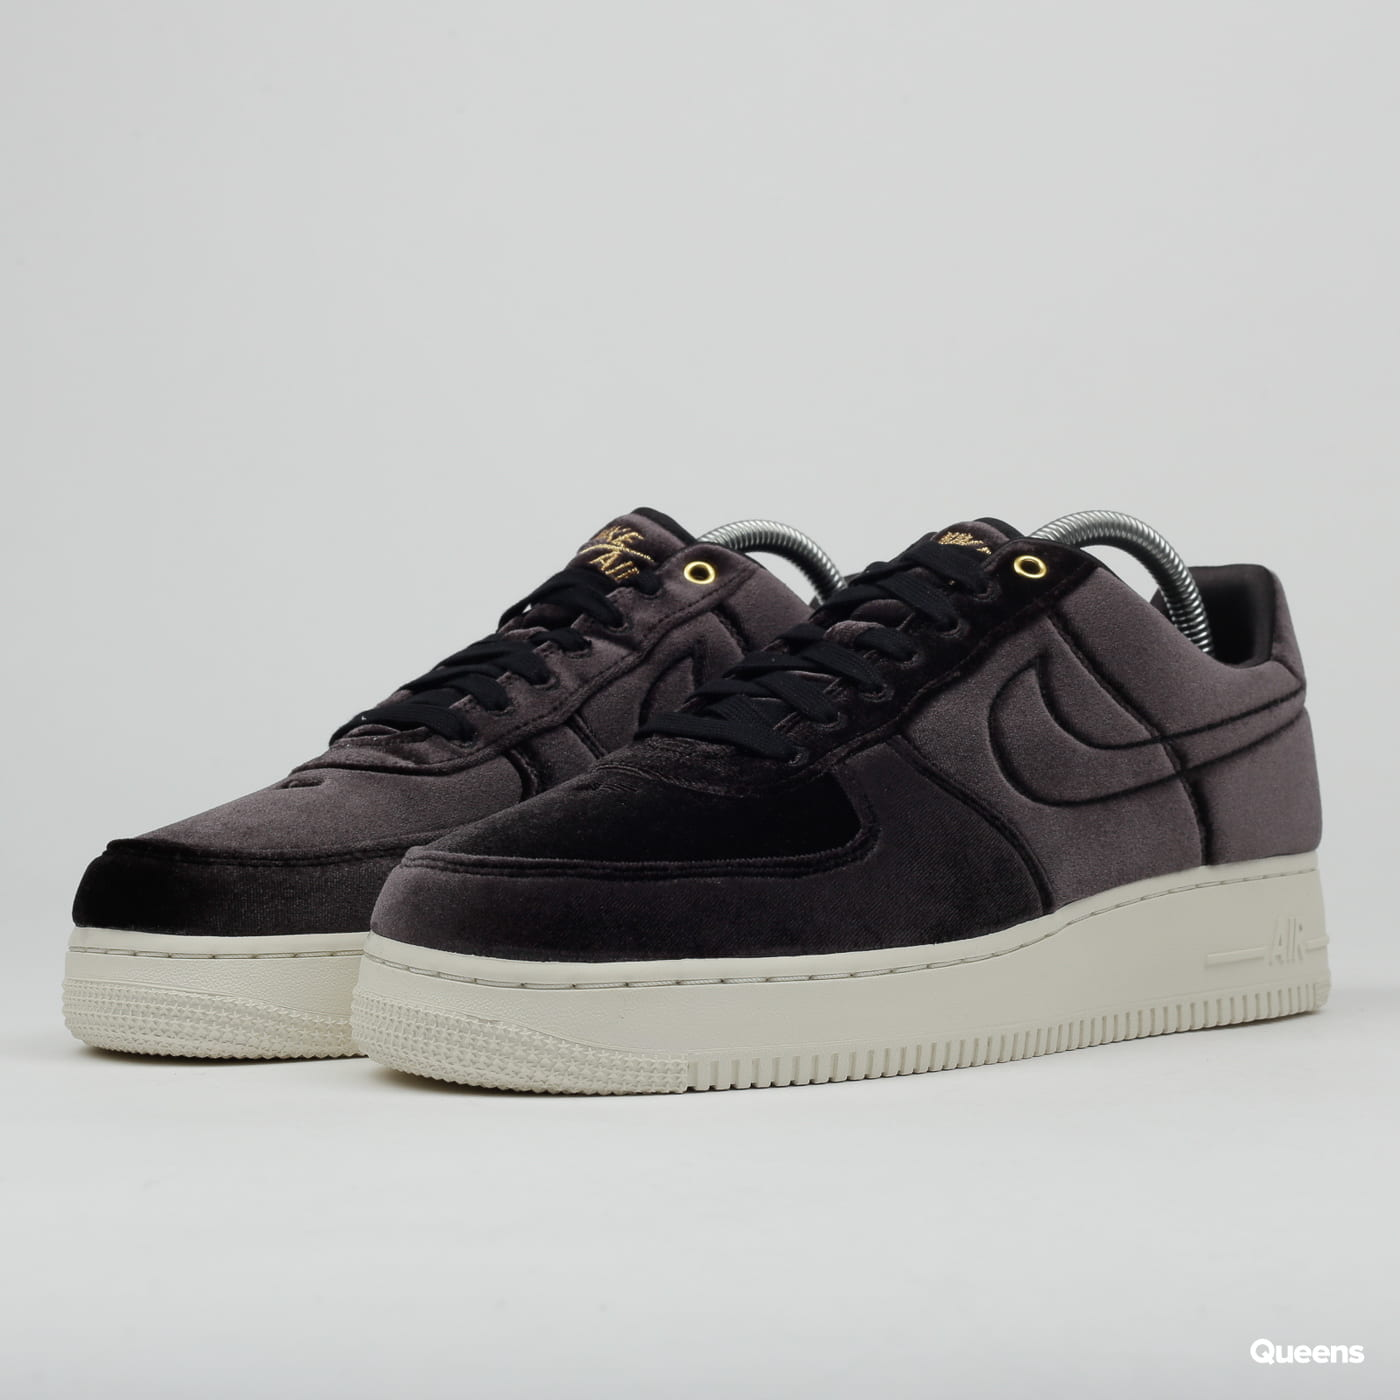 Nike Air Force 1 '07 Premium 3 black / black - sail - metallic gold